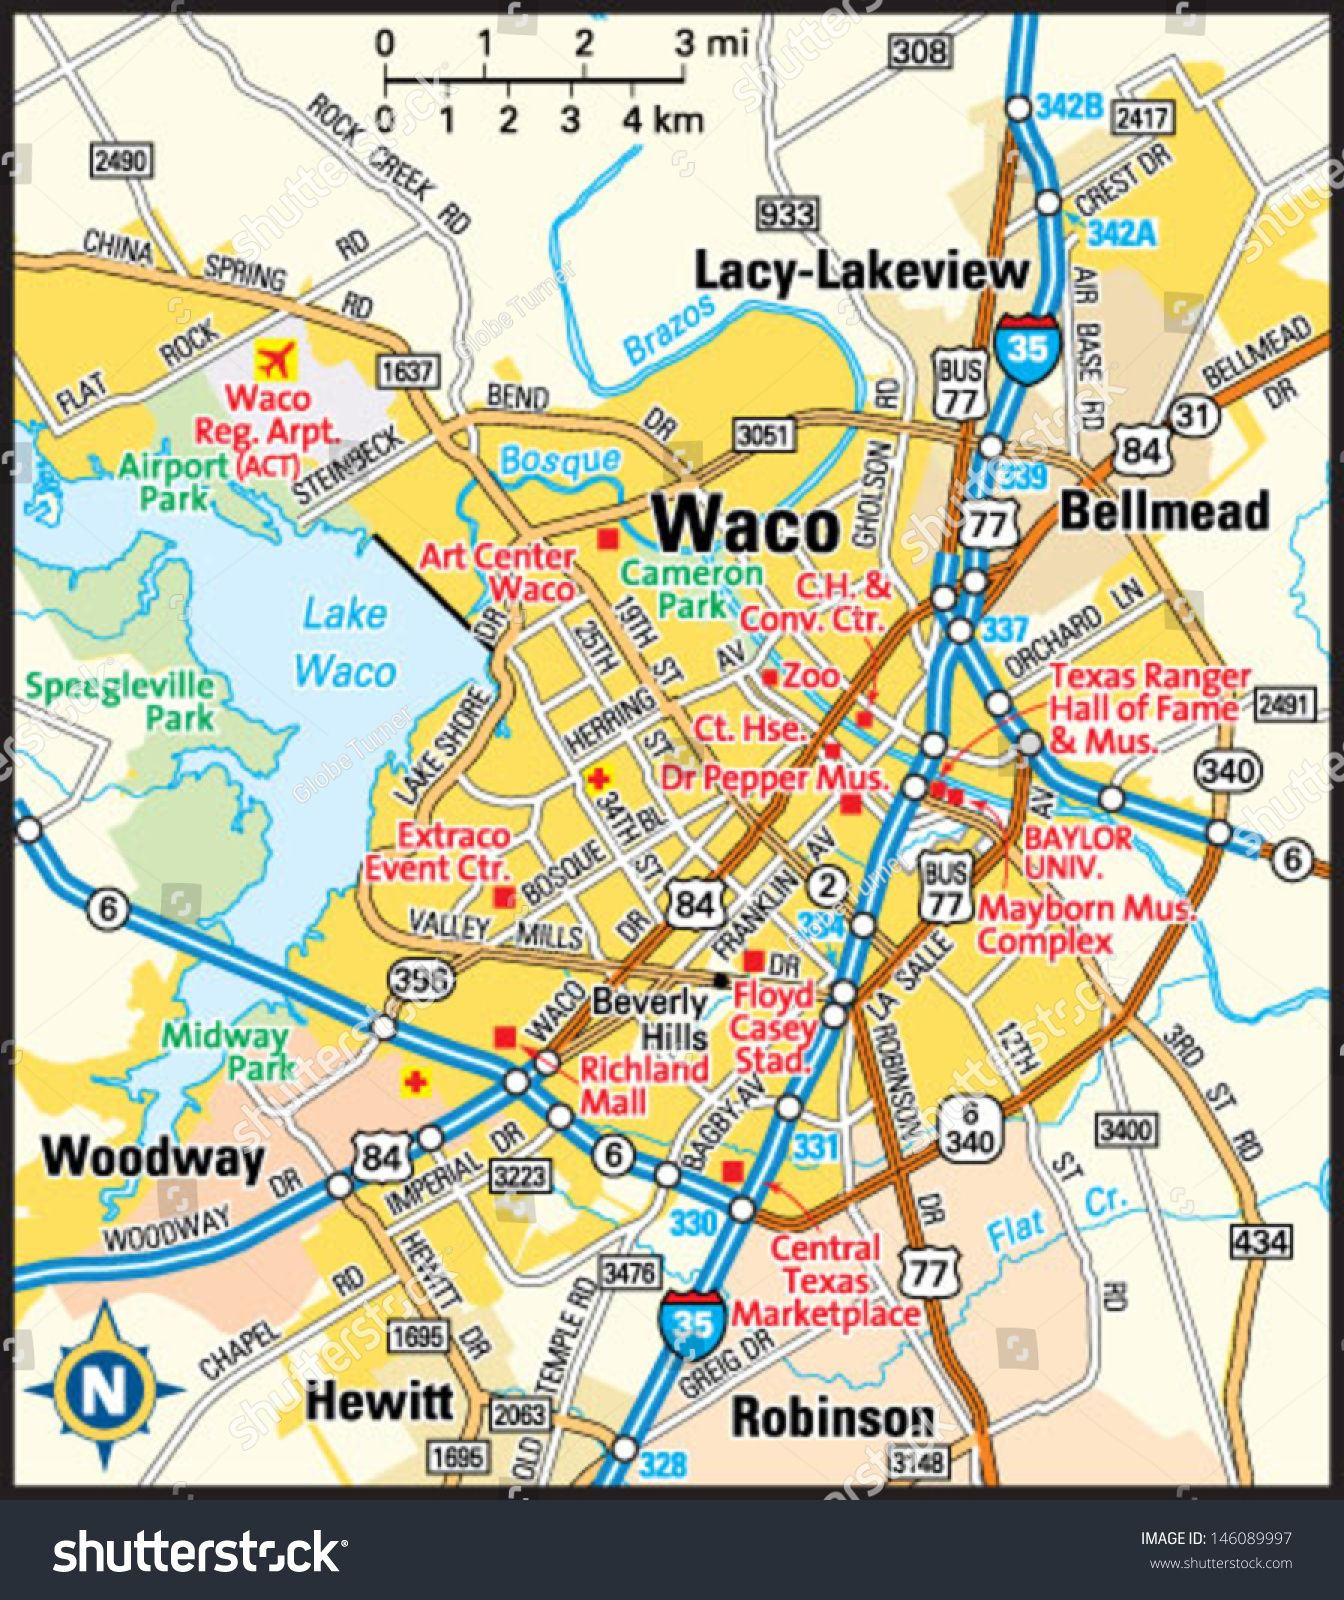 Map Of Waco Texas And Surrounding Area Image result for waco tx city map | Waco, Waco texas, City map